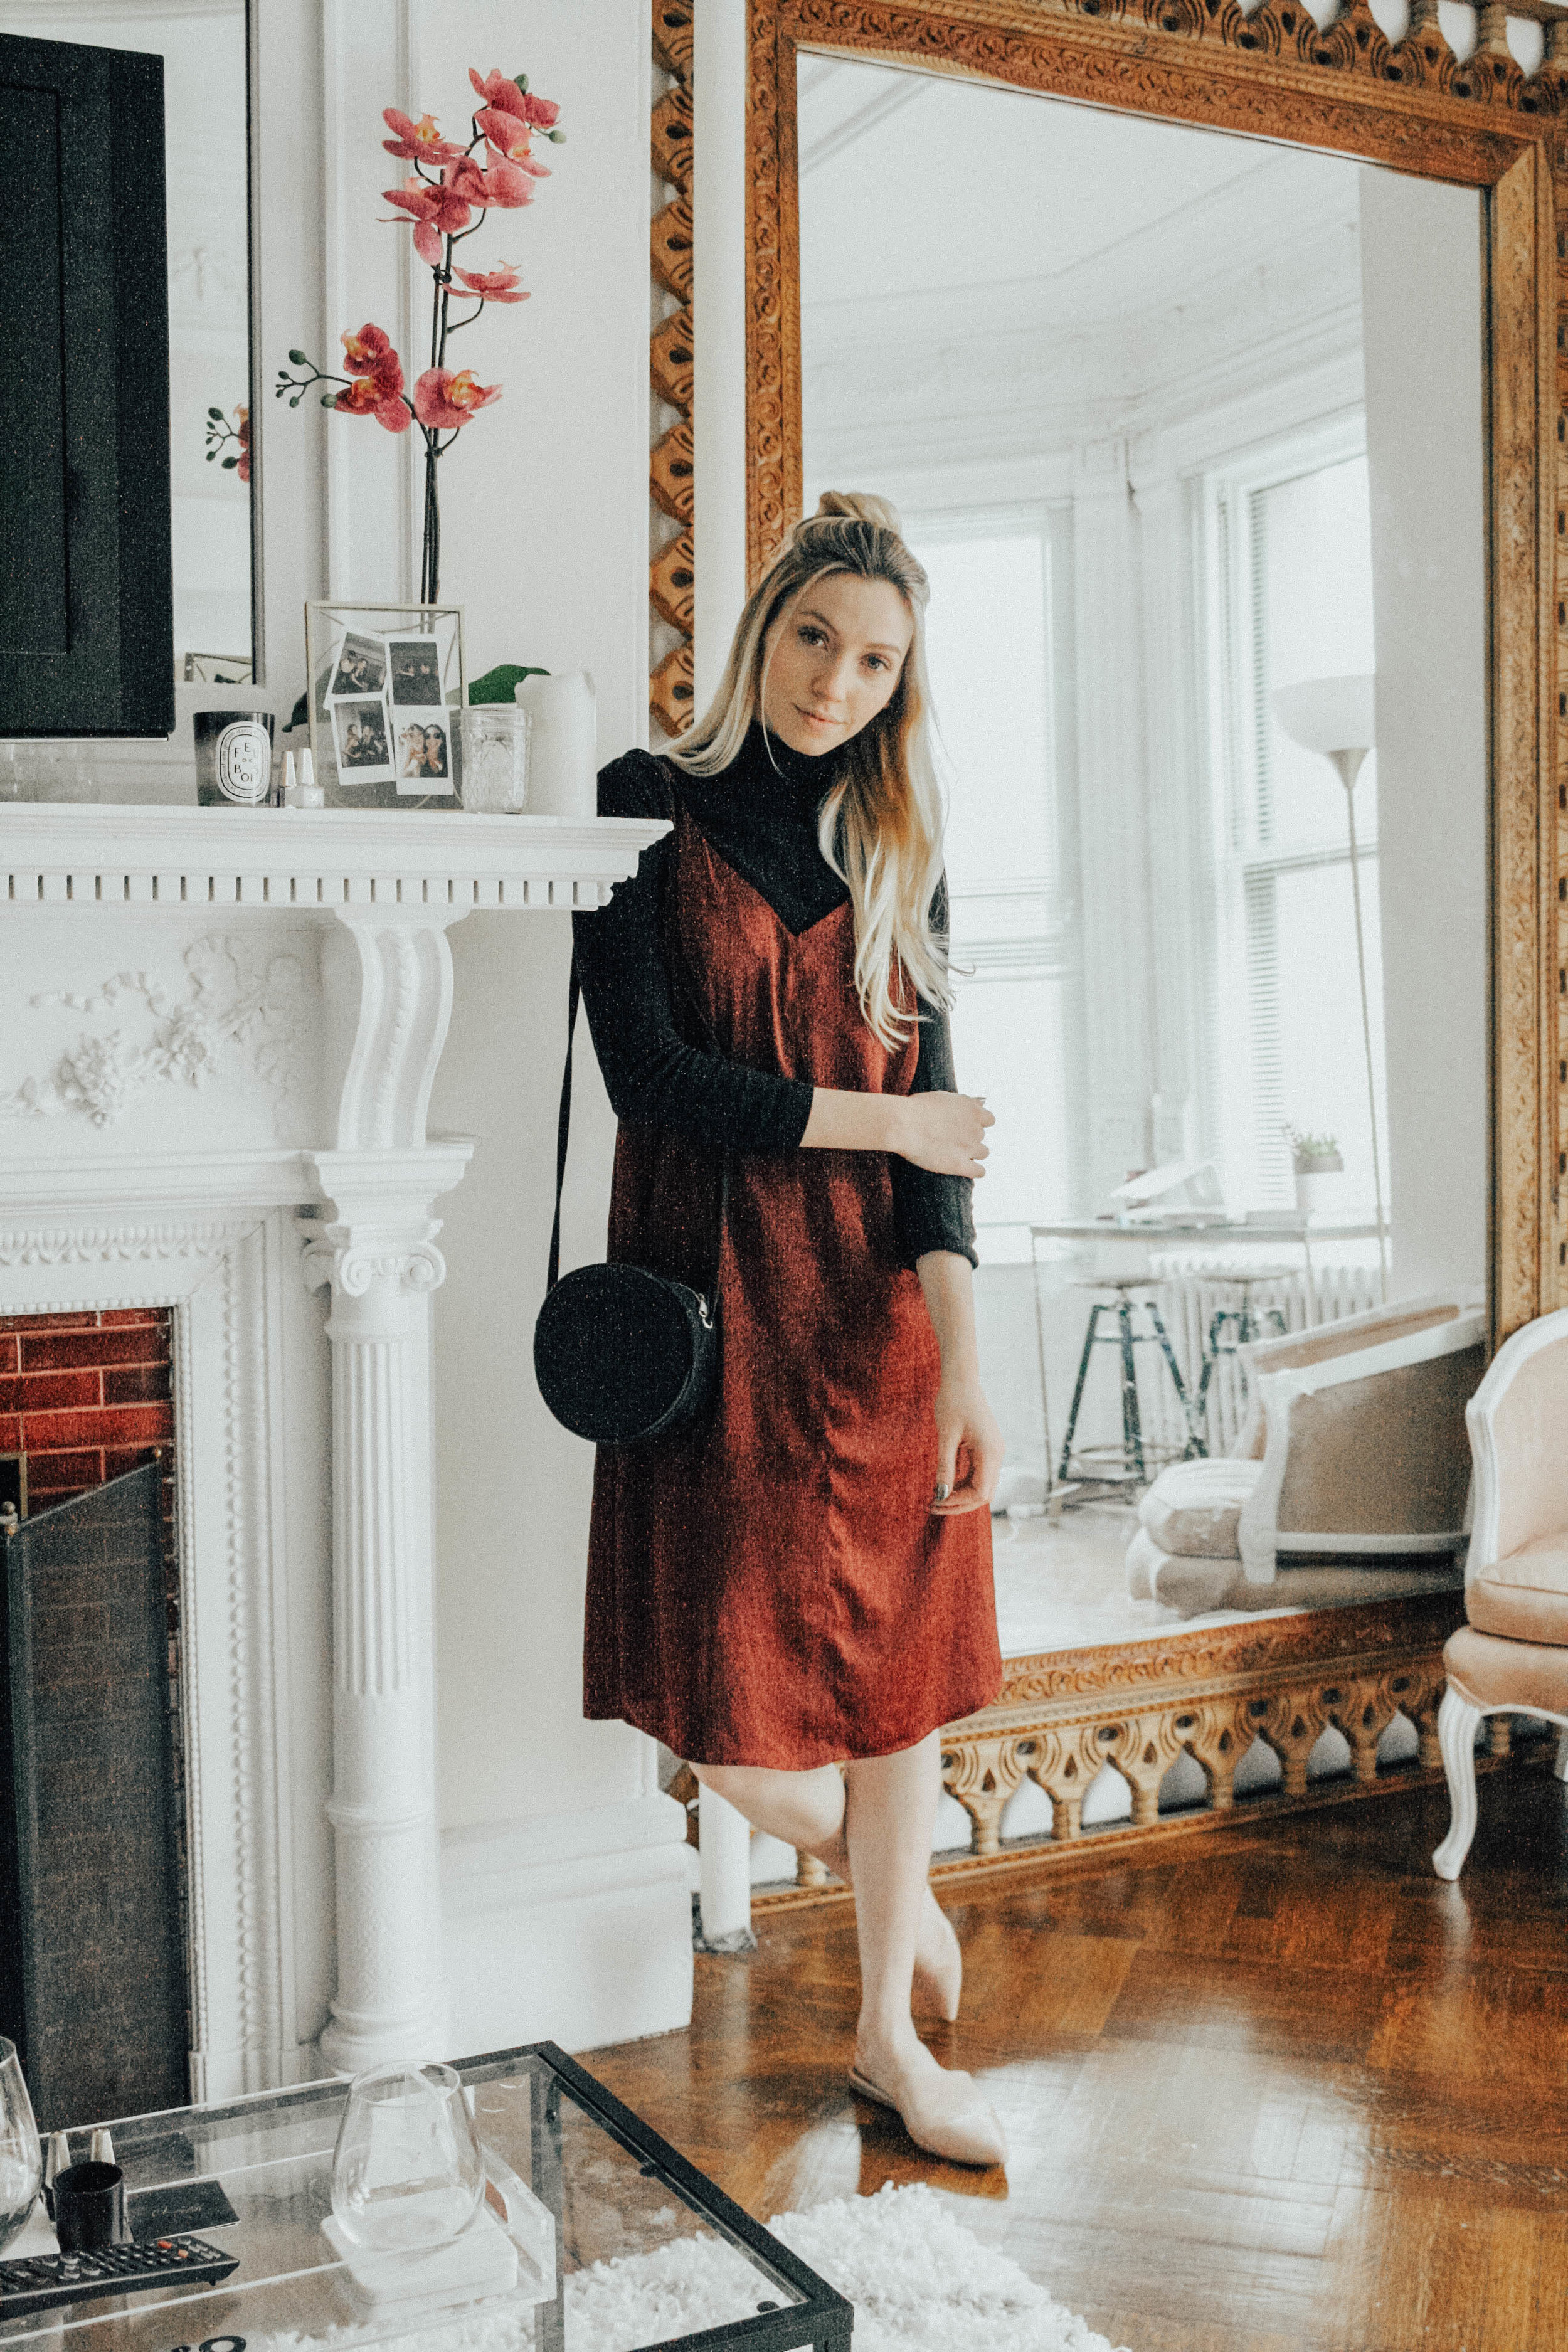 How To Style A Turtleneck: 3 Ways